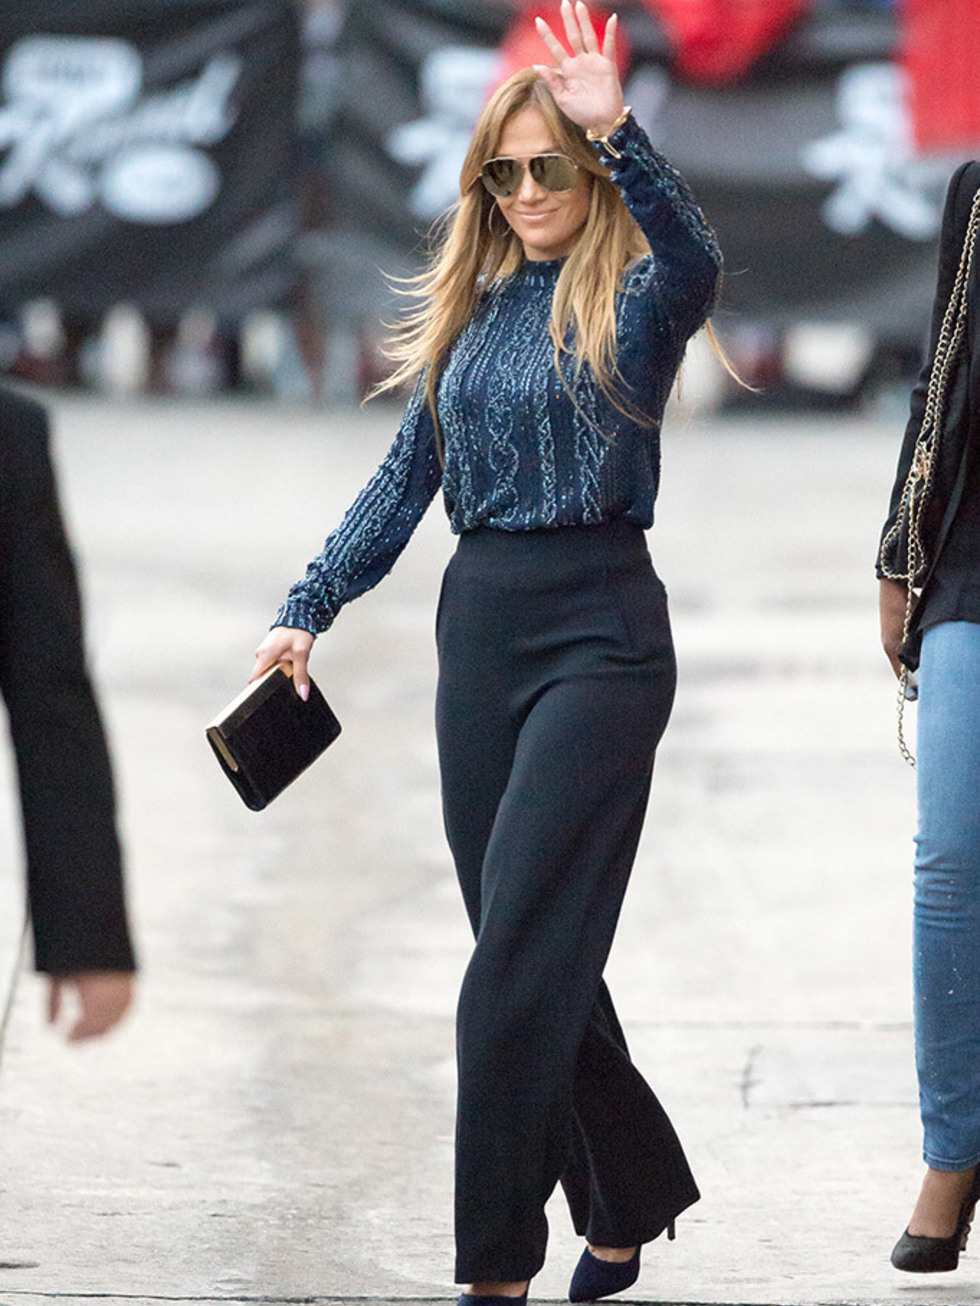 Jlo Street Style Images Galleries With A Bite